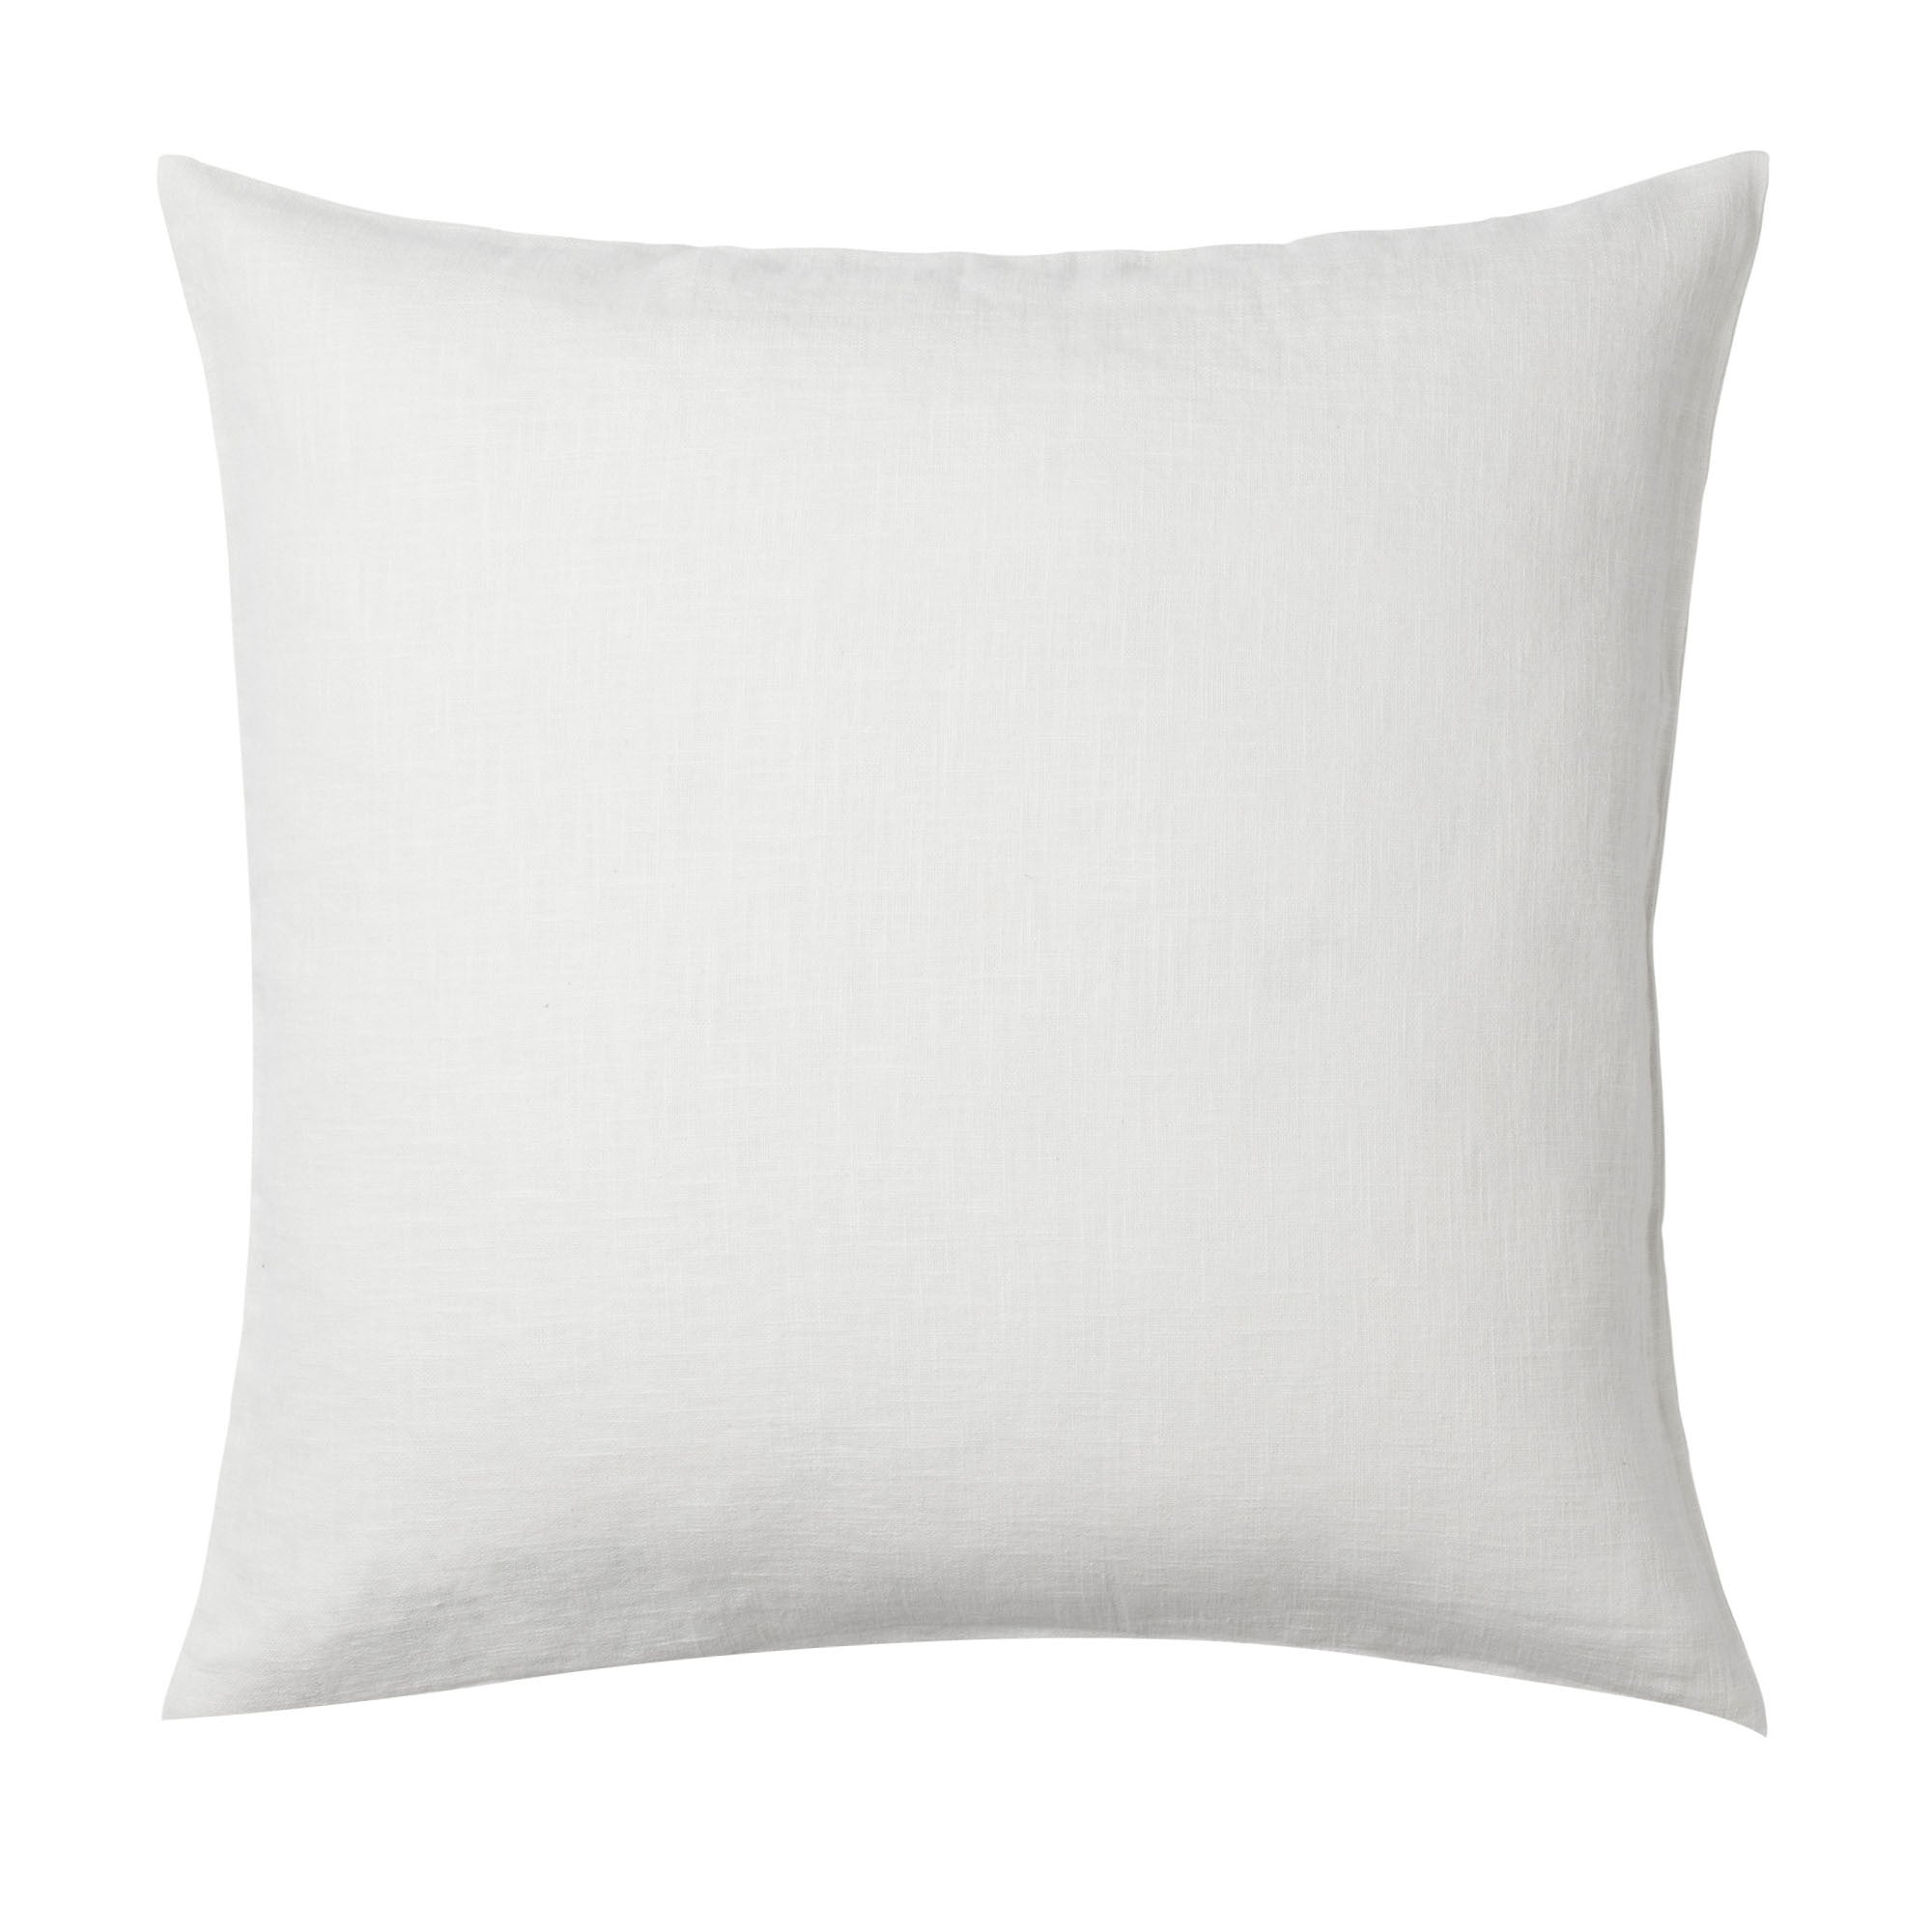 Handcrafted Spring Fest Cushion Covers (Set of 2)